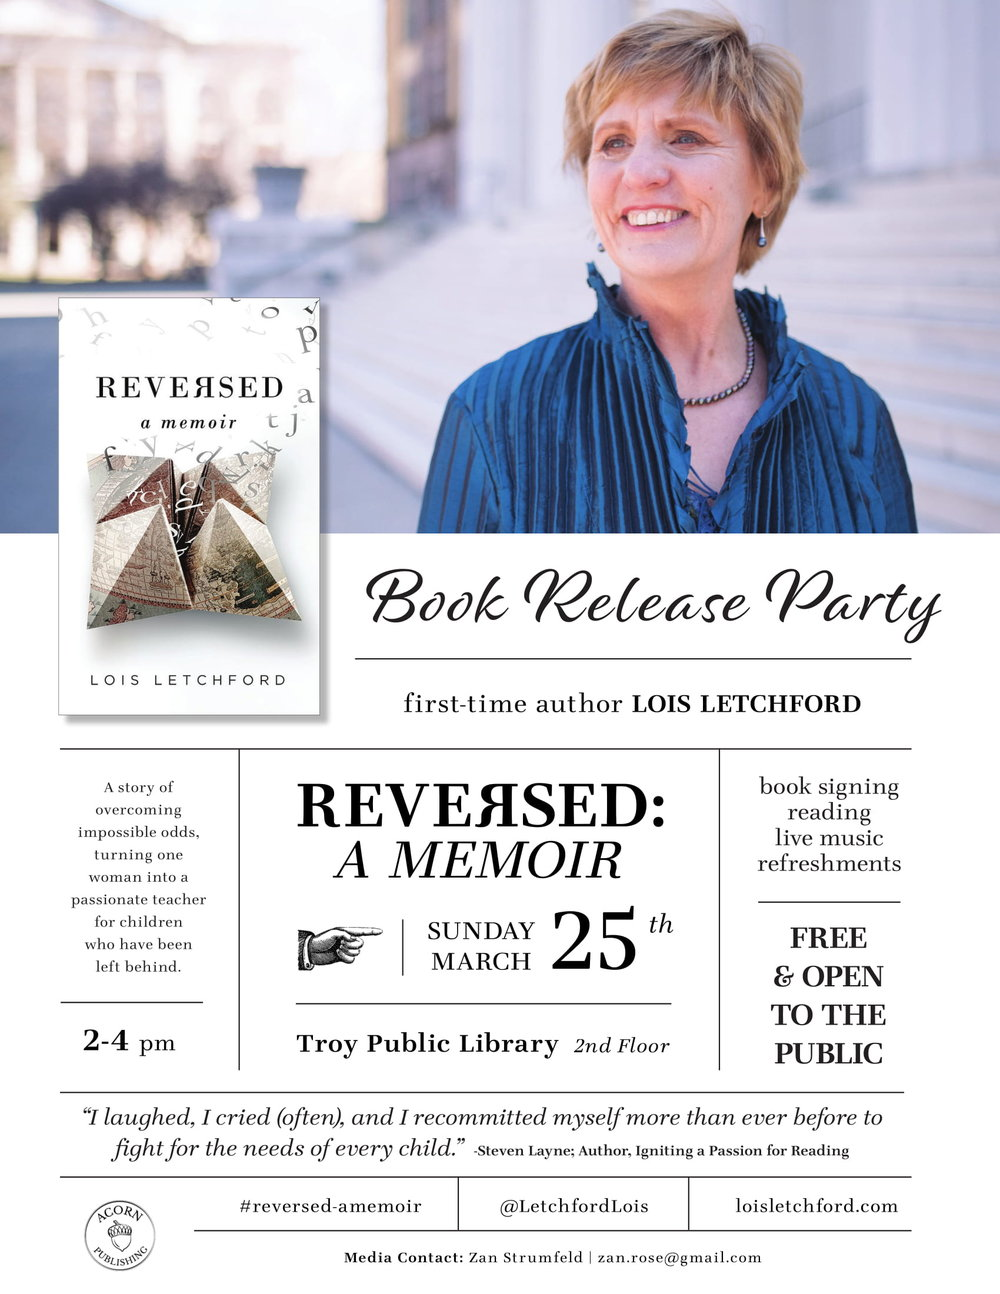 book-release-party-flyer-online-8.5x11-1.jpg